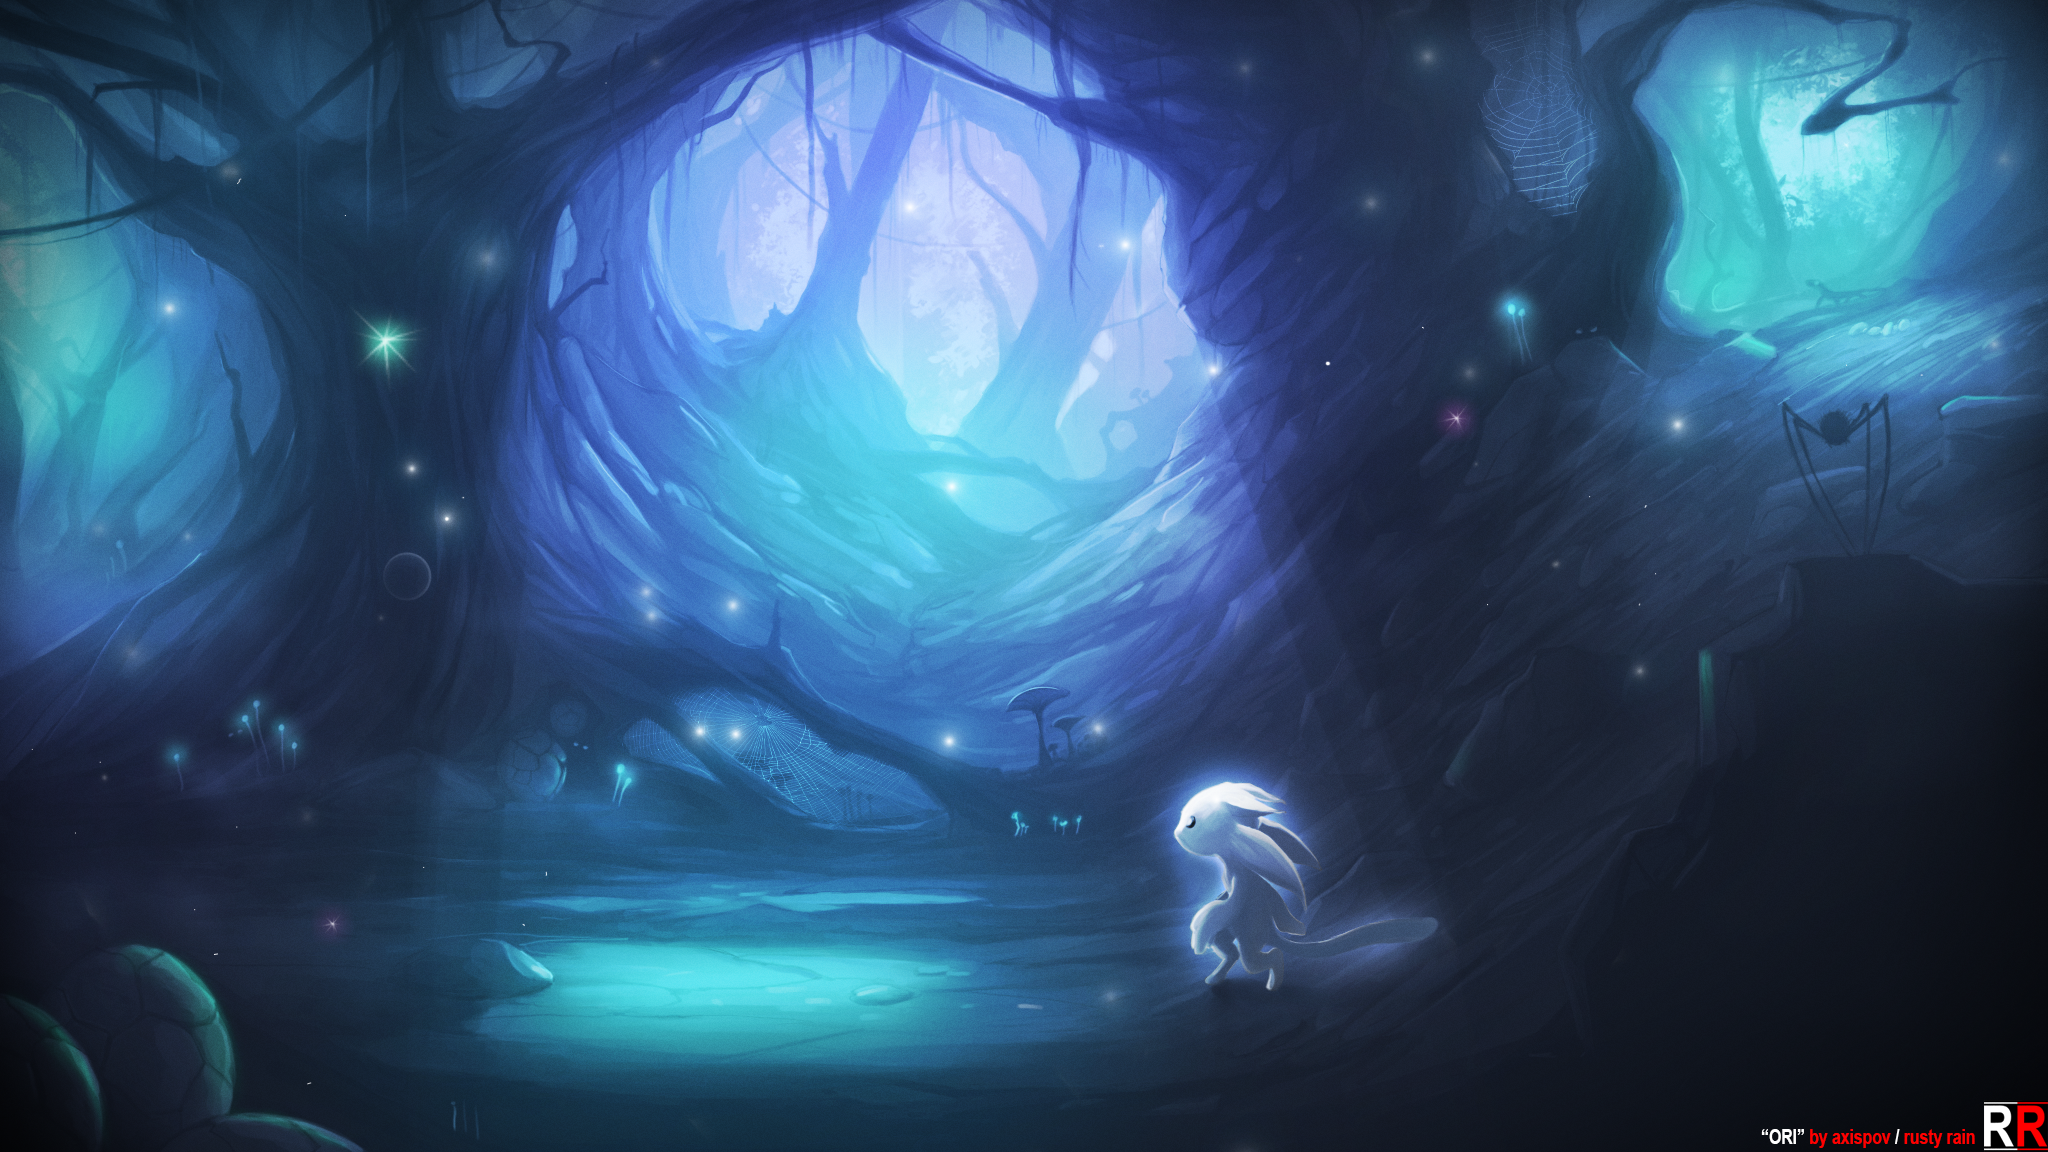 Free Download Ori And The Blind Forest Fanart By Axispov 48x1152 For Your Desktop Mobile Tablet Explore 50 Wallpaper And Blinds For Less American Blinds And Wallpaper Wallpaper For